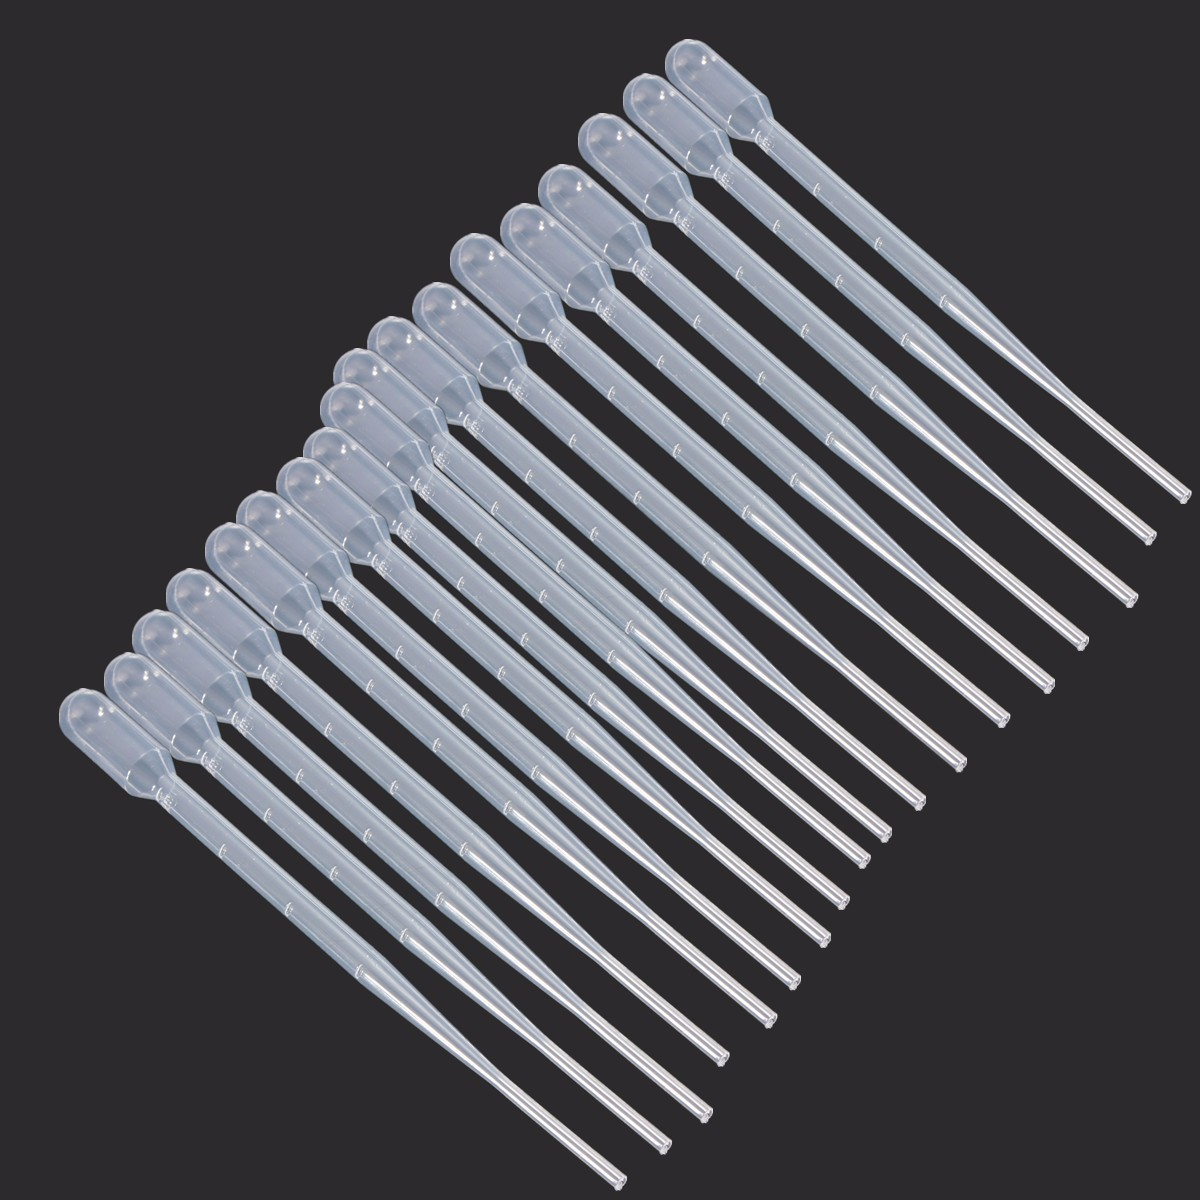 10Pcs New 2ml Clear Plastic Eye Dropper Set Liquid Transfer Graduated Pipettes For Laboratory Experiment Medical Microbiology